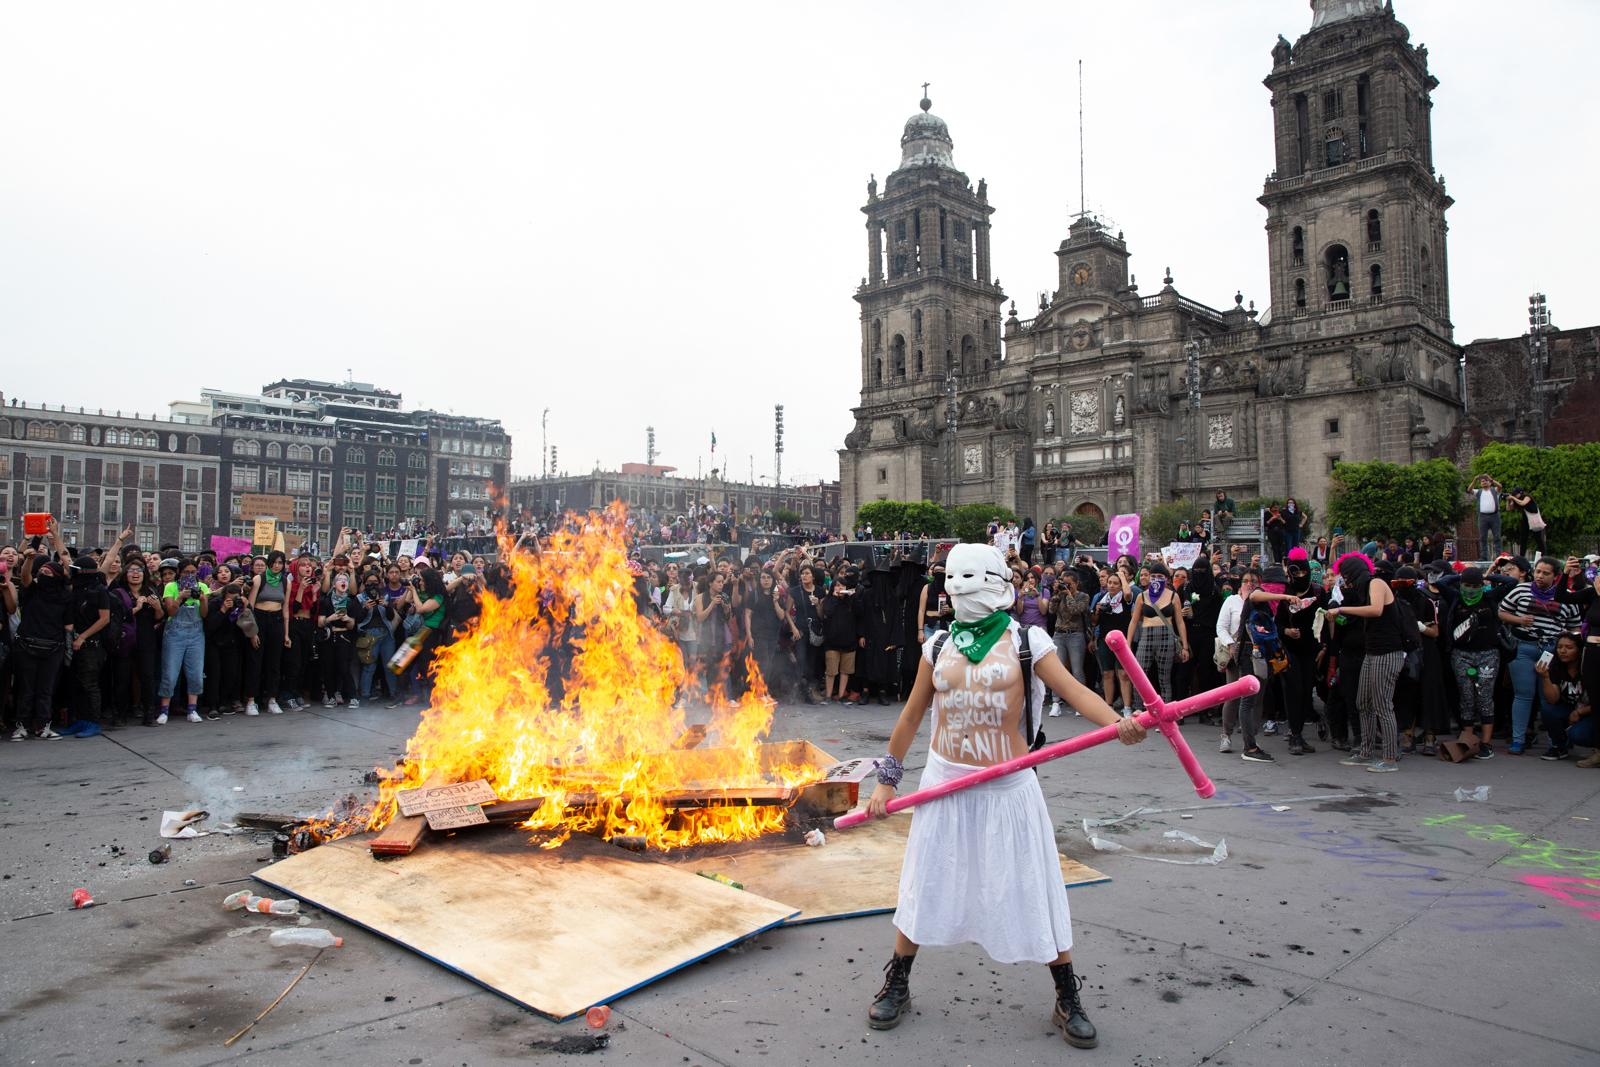 MEXICO Demonstrators circle round a wood pile they set on fire as they rally against gender-based violence and inequality on International Women's Day in Mexico City on March 8, 2020. According to government statistics, at least ten women are murdered every day in Mexico, making it one of the most dangerous countries in the world for girls and women.